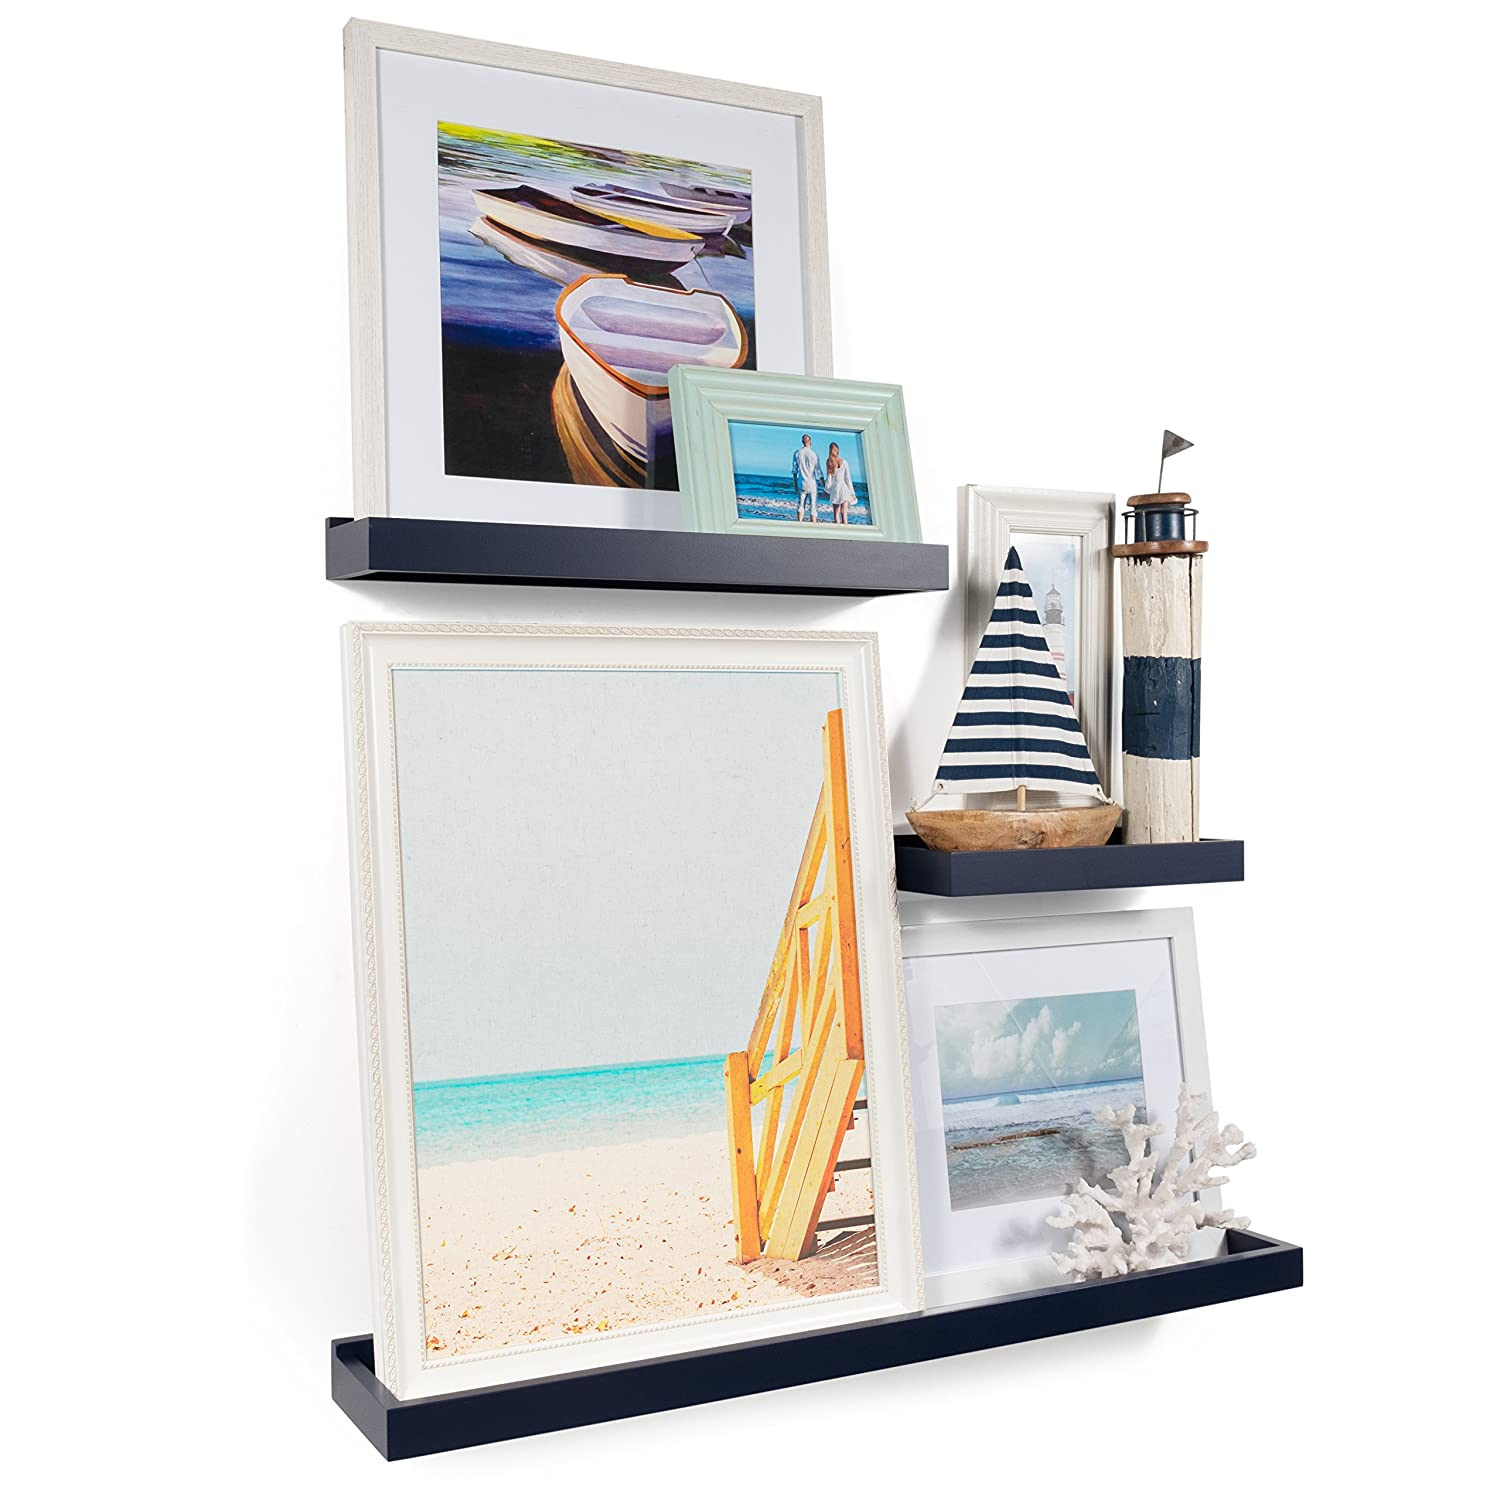 Wallniture Philly 3 Varying Sizes Floating Shelves Trays Bookshelves and Display Bookcase – Modern Wood Shelving for Kids Room and Nursery – Wall Mounted Storage Bathroom Shelf (Navy)